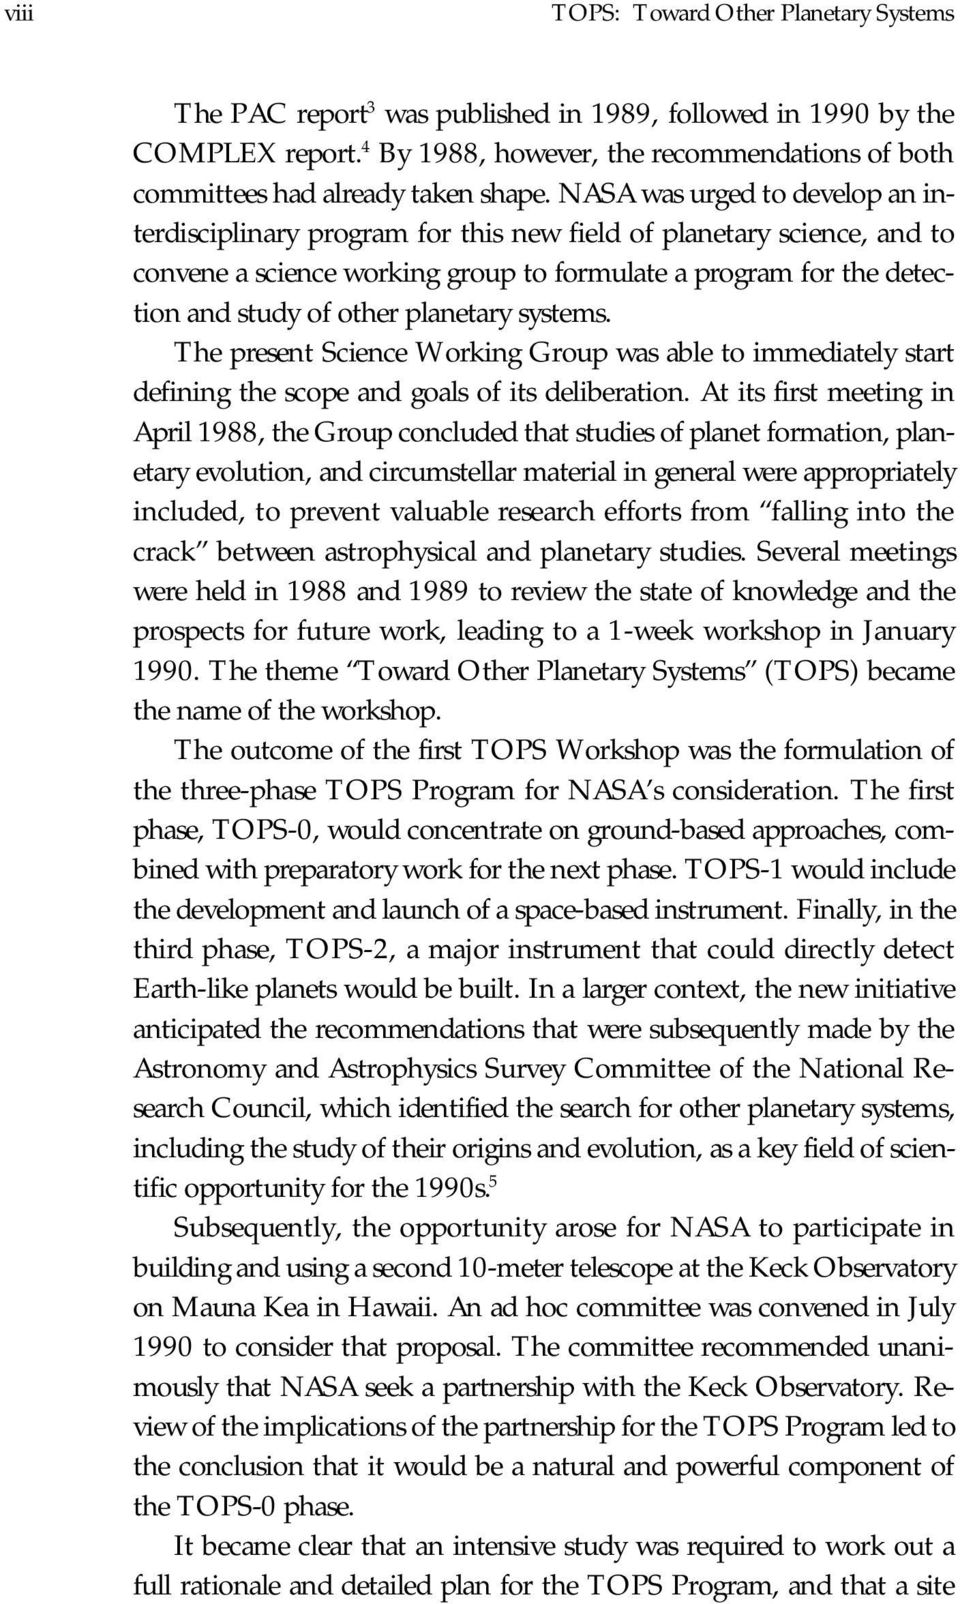 NASA was urged to develop an interdisciplinary program for this new field of planetary science, and to convene a science working group to formulate a program for the detection and study of other